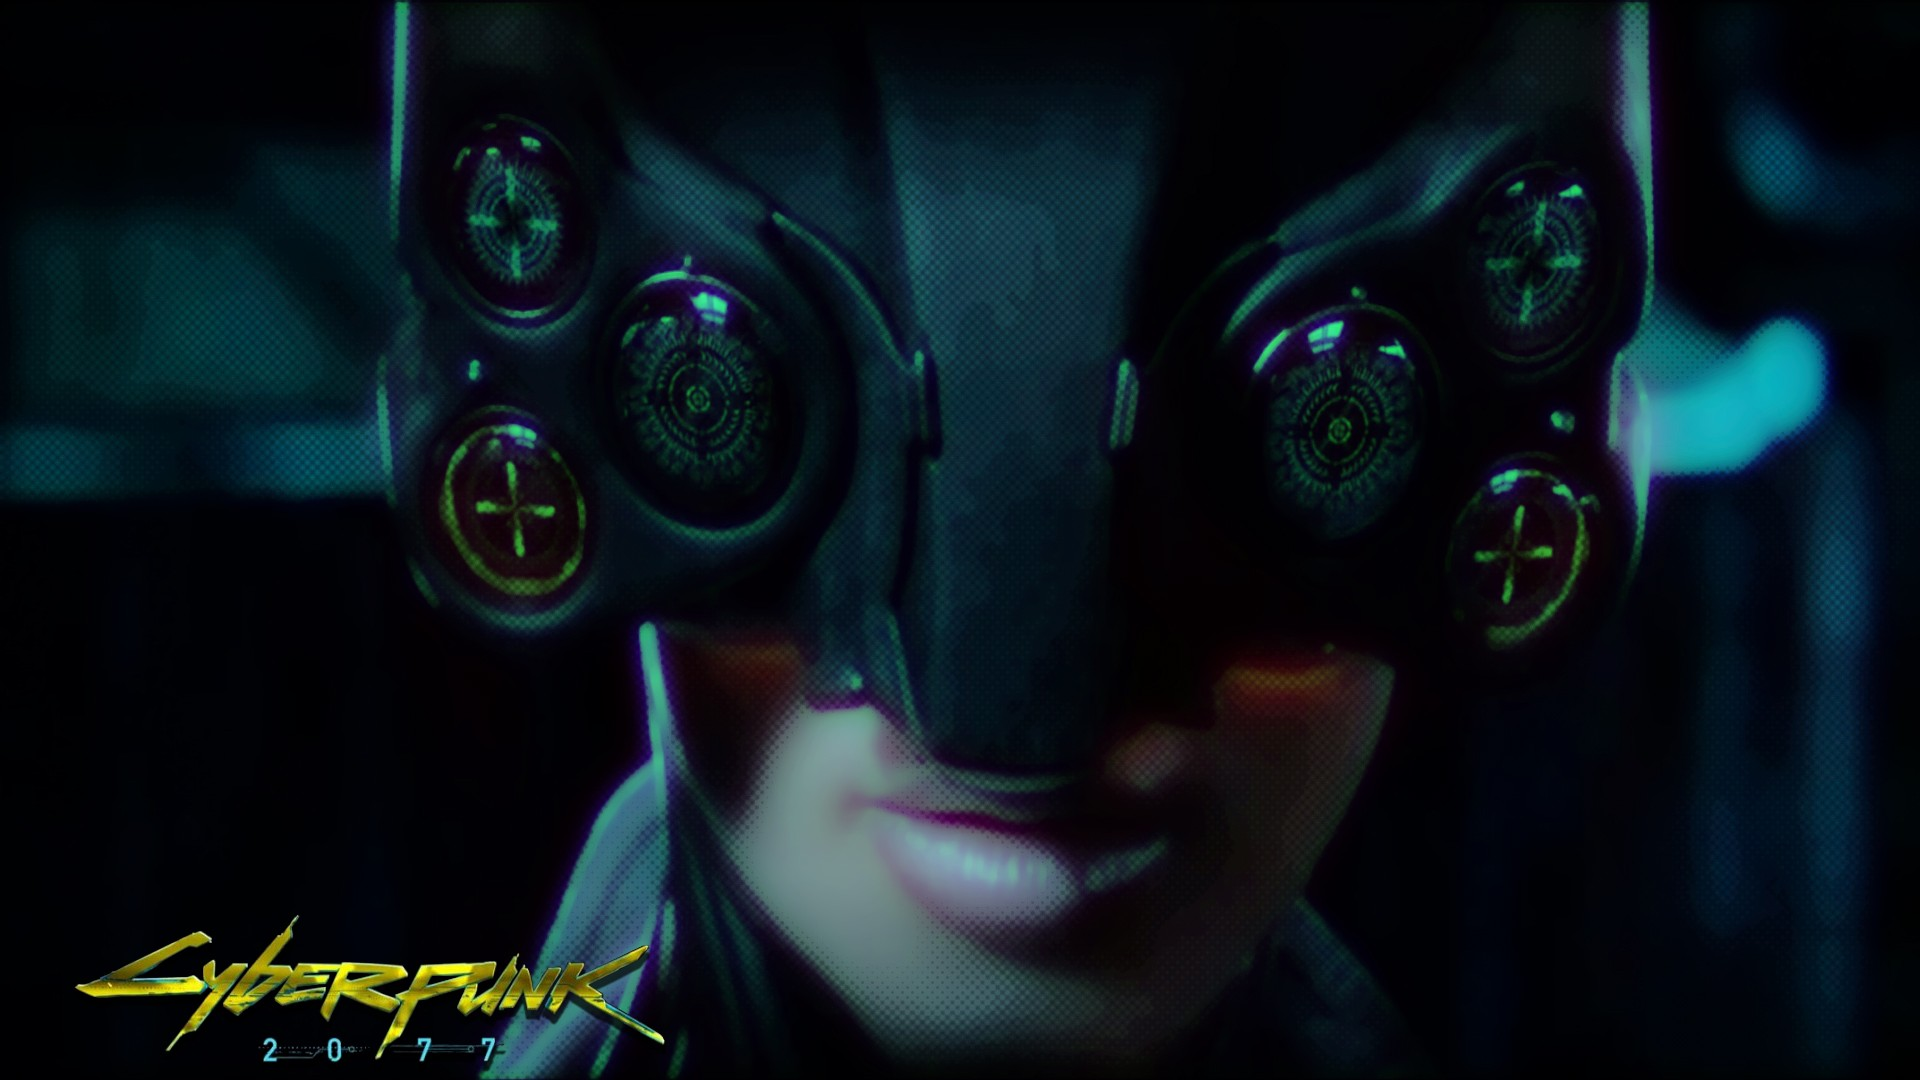 20 Free Cyberpunk 2077 Hd Wallpapers To Download